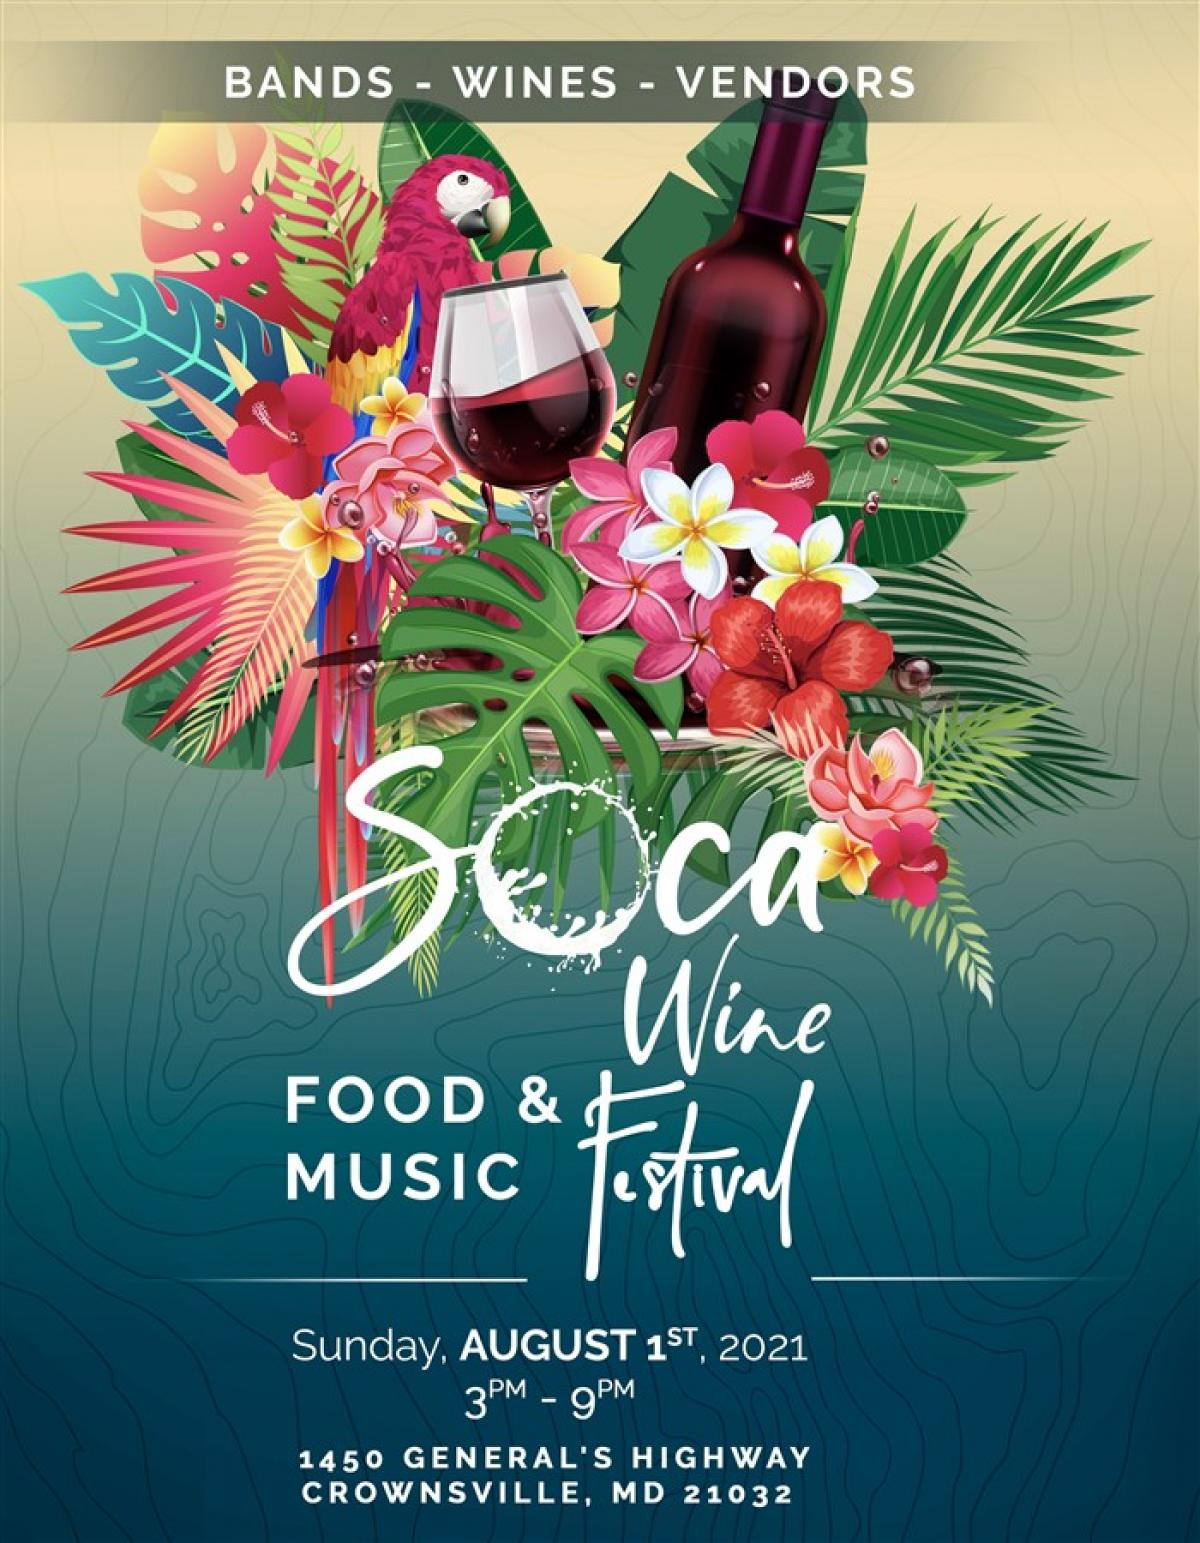 Soca Wine Music & Food Festival flyer or graphic.